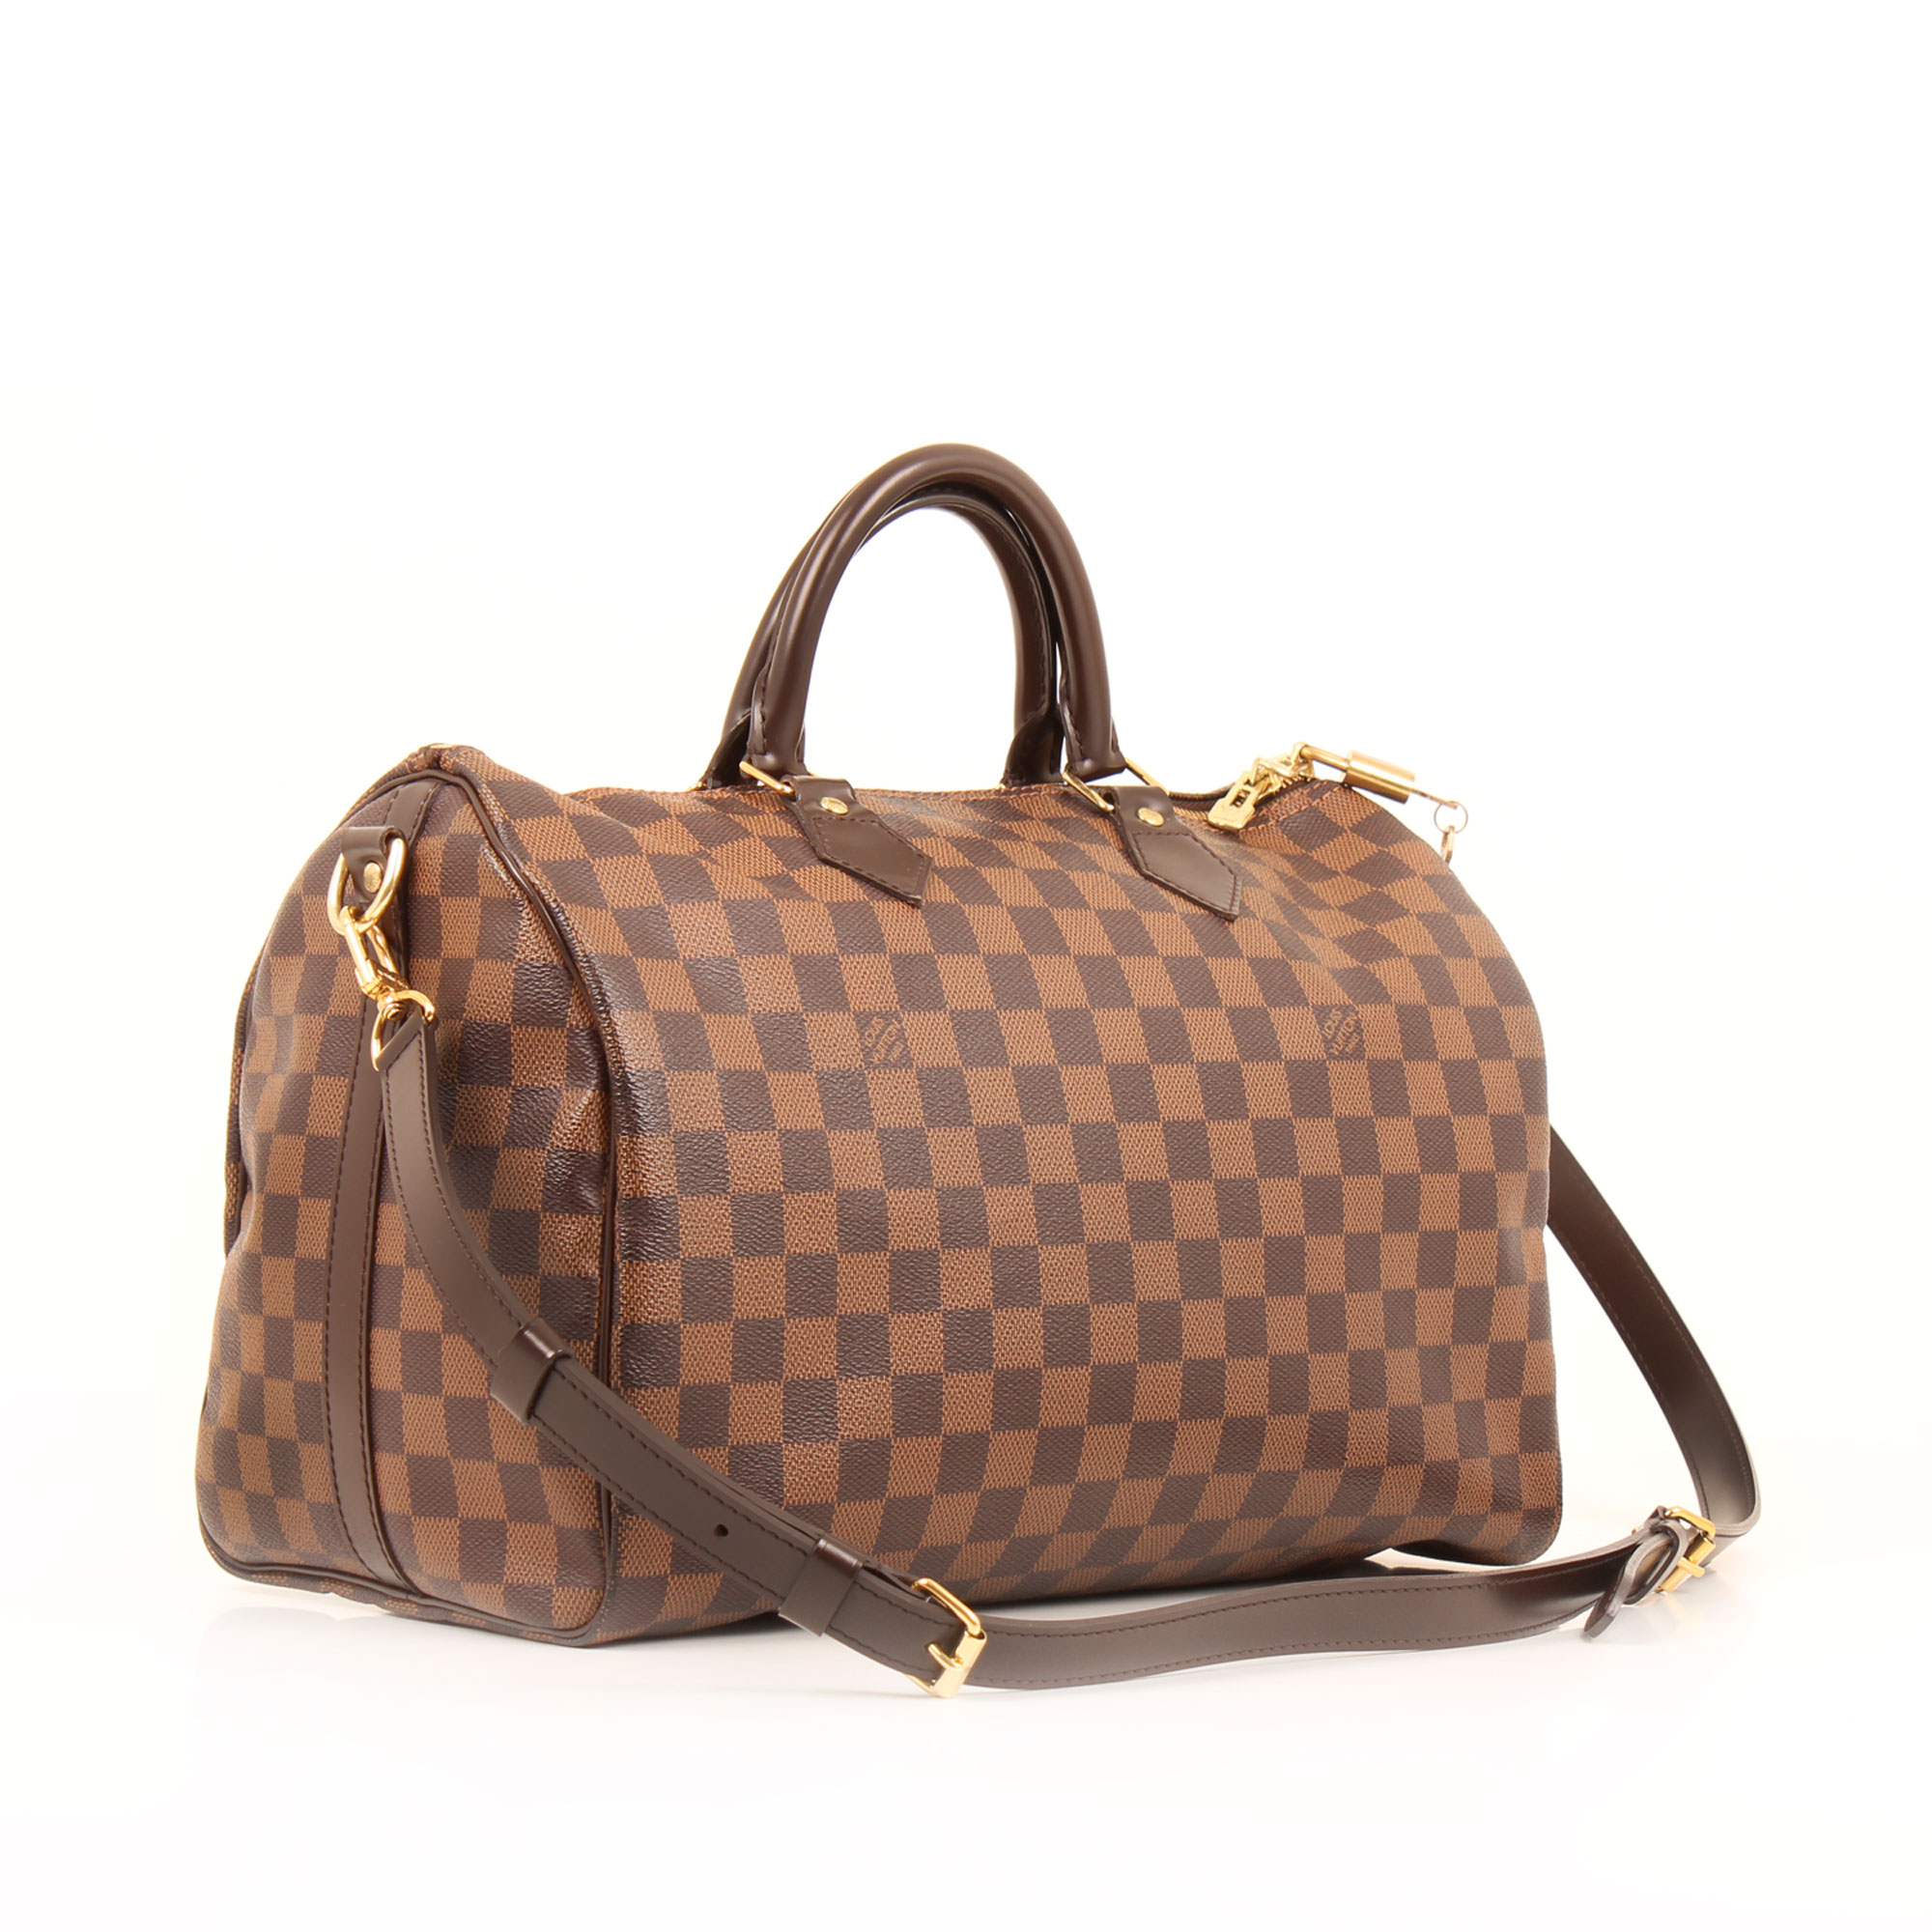 46a751cdf82 General image of louis vuitton speedy 35 bandouliere damier ebene bag